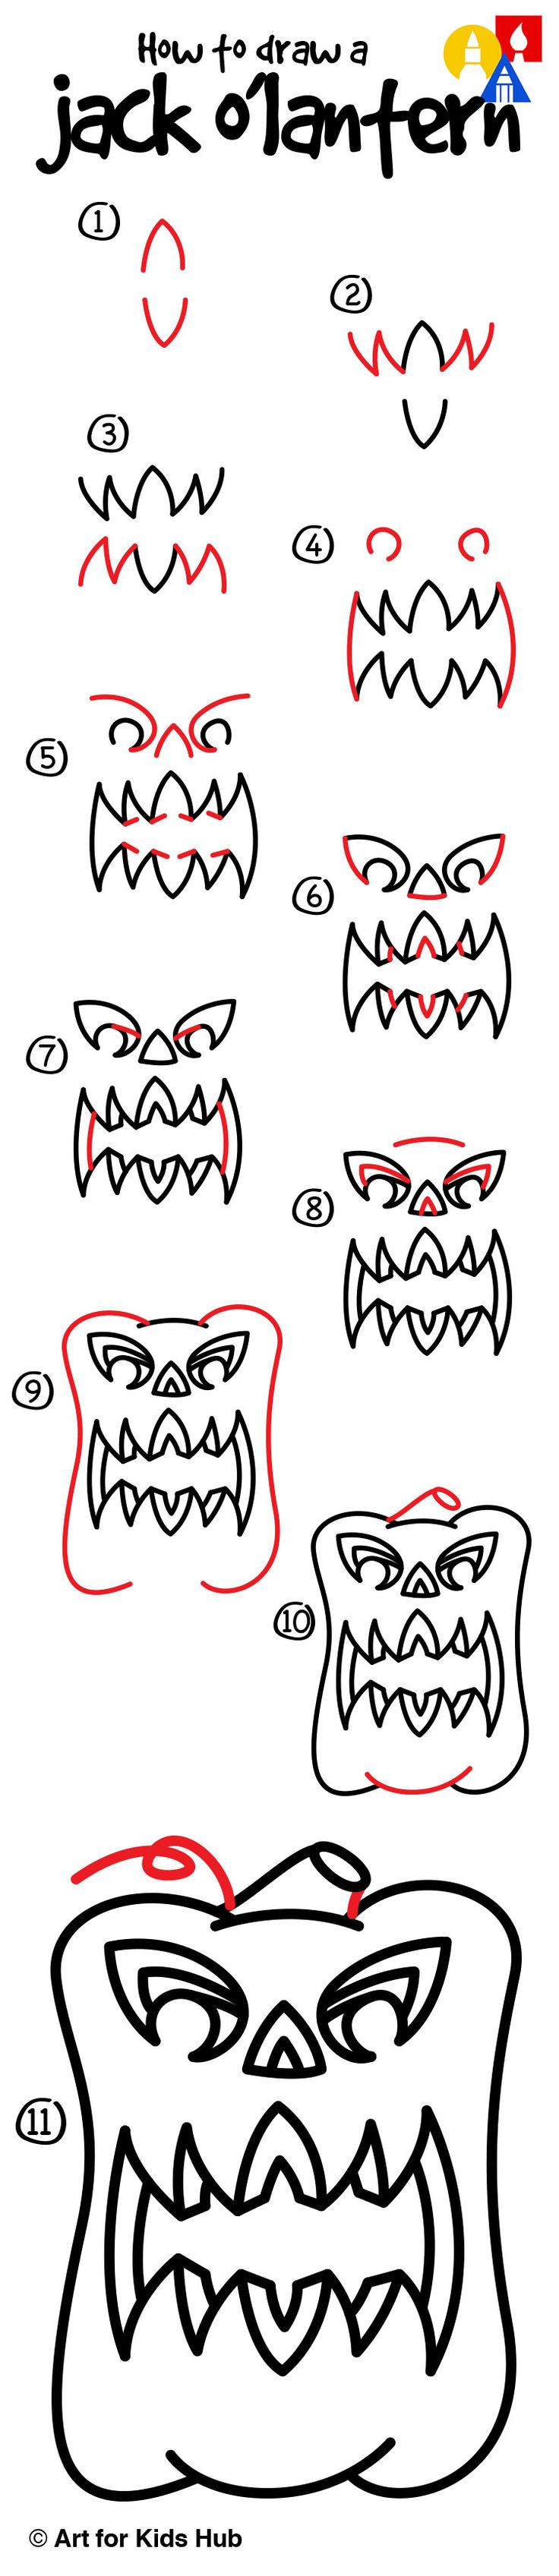 Learn how to draw a 3D jack o lantern in a few simple steps. Watch our quick video and follow along to draw your own.